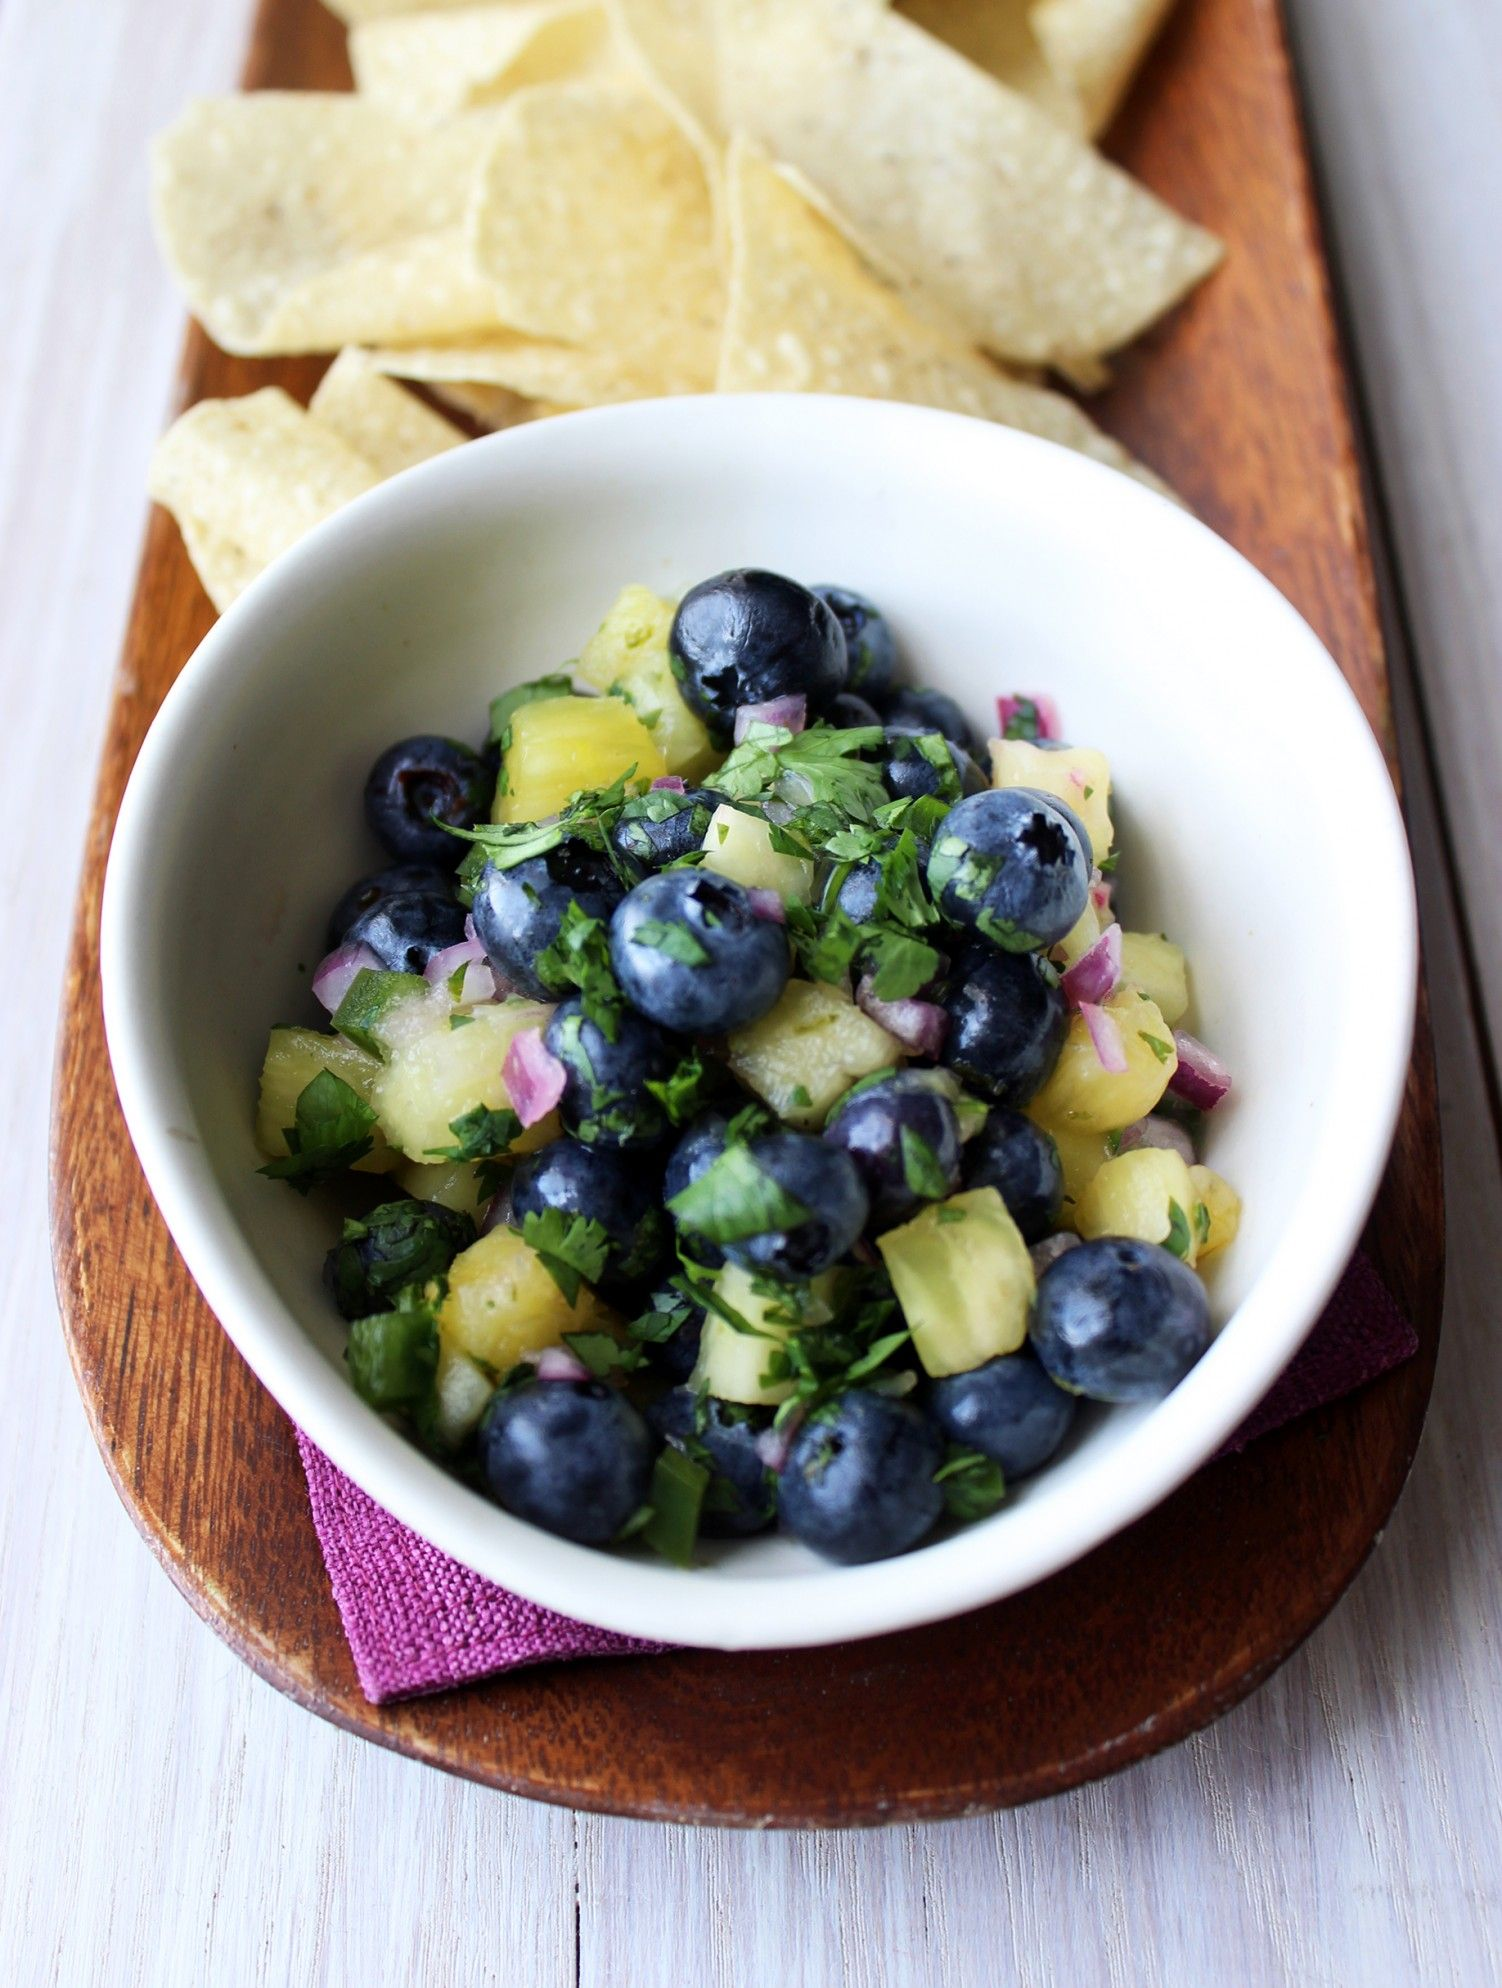 This Blueberry Pineapple Salsa looks delicious on this hot day!